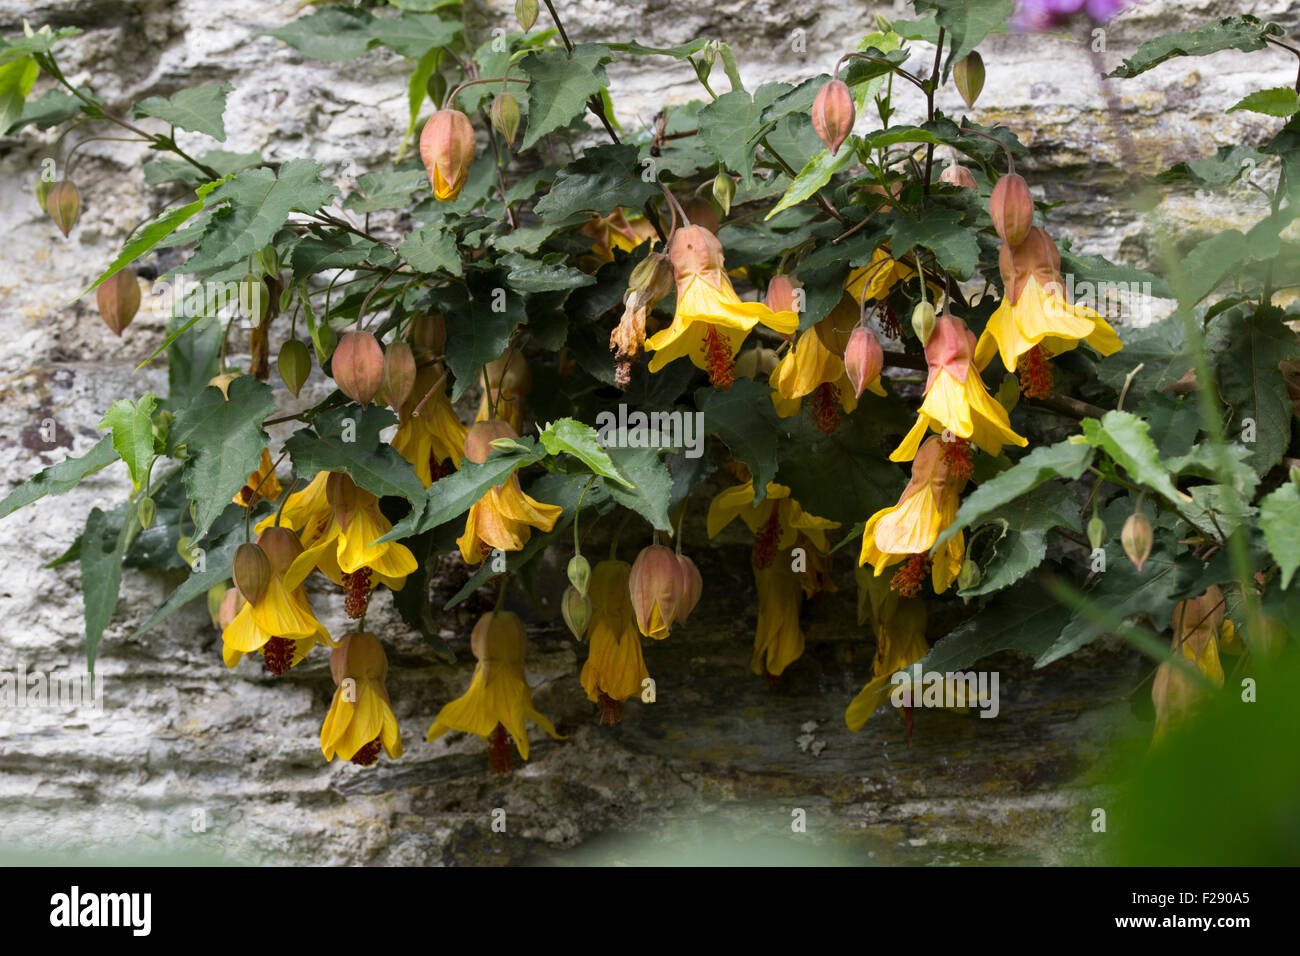 Grown as a wall shrub abutilon victory dangles bell shaped yellow grown as a wall shrub abutilon victory dangles bell shaped yellow flowers through the warmer months mightylinksfo